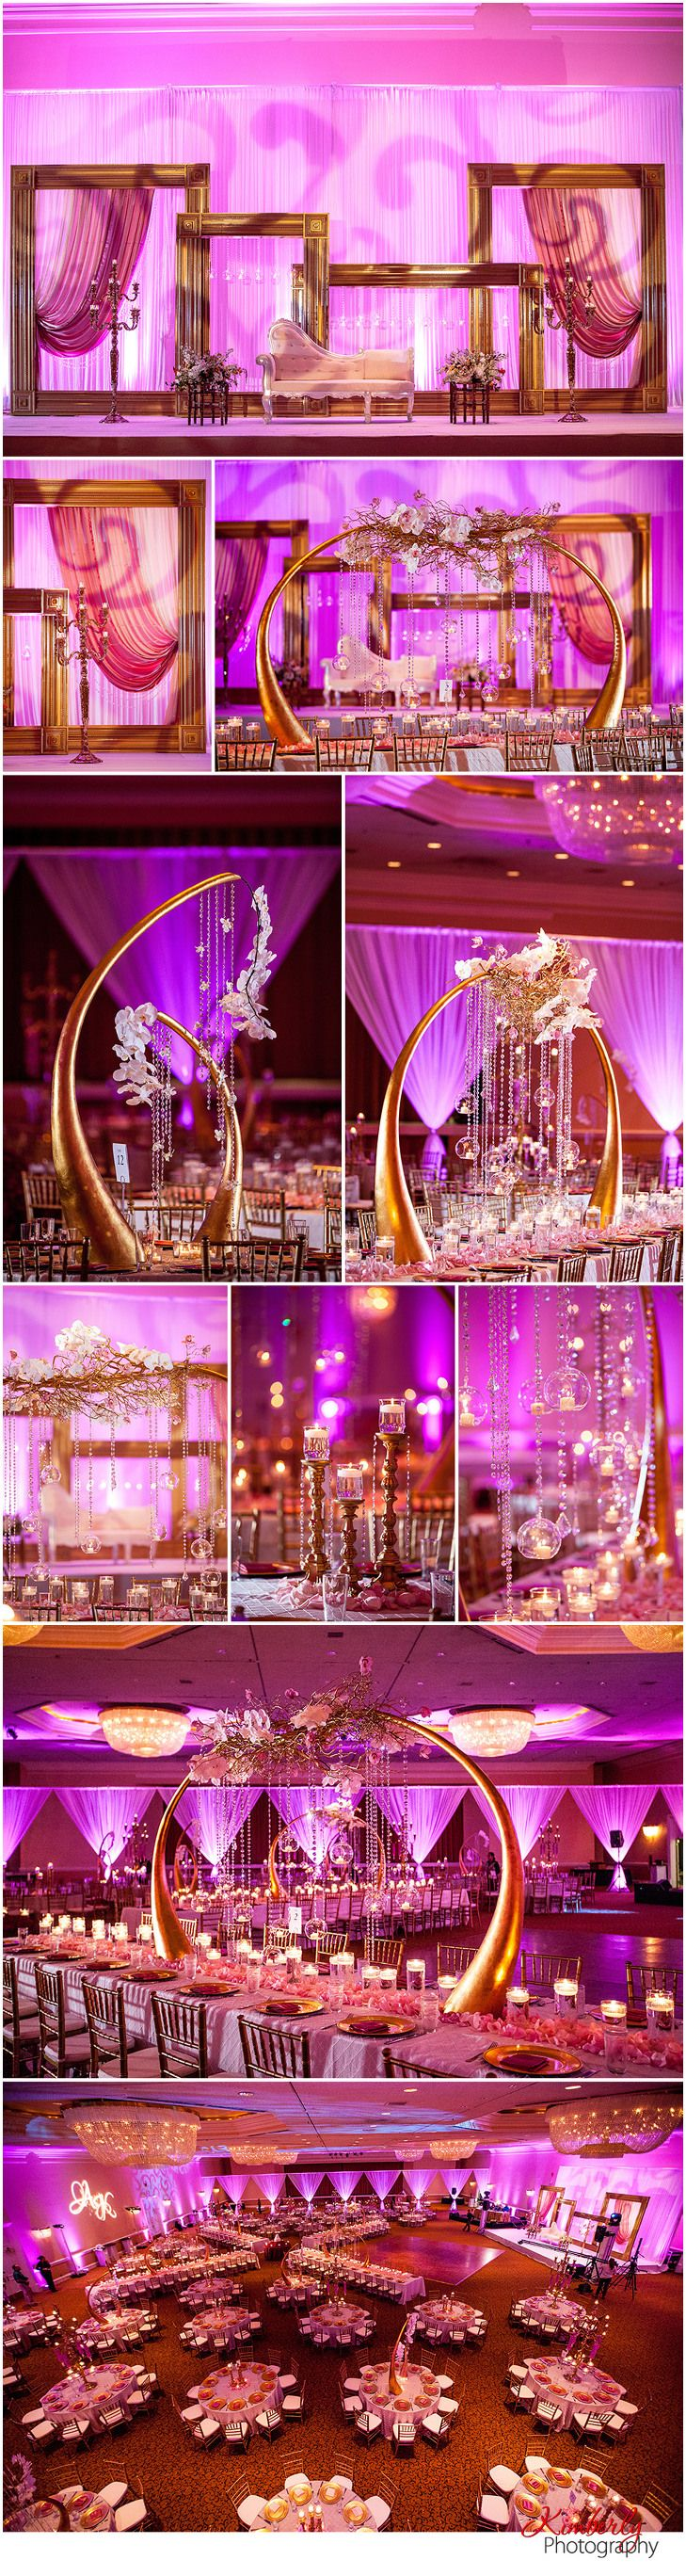 Florida Indian Wedding Decor – Get Inspired Part 4! » Kimberly Photography